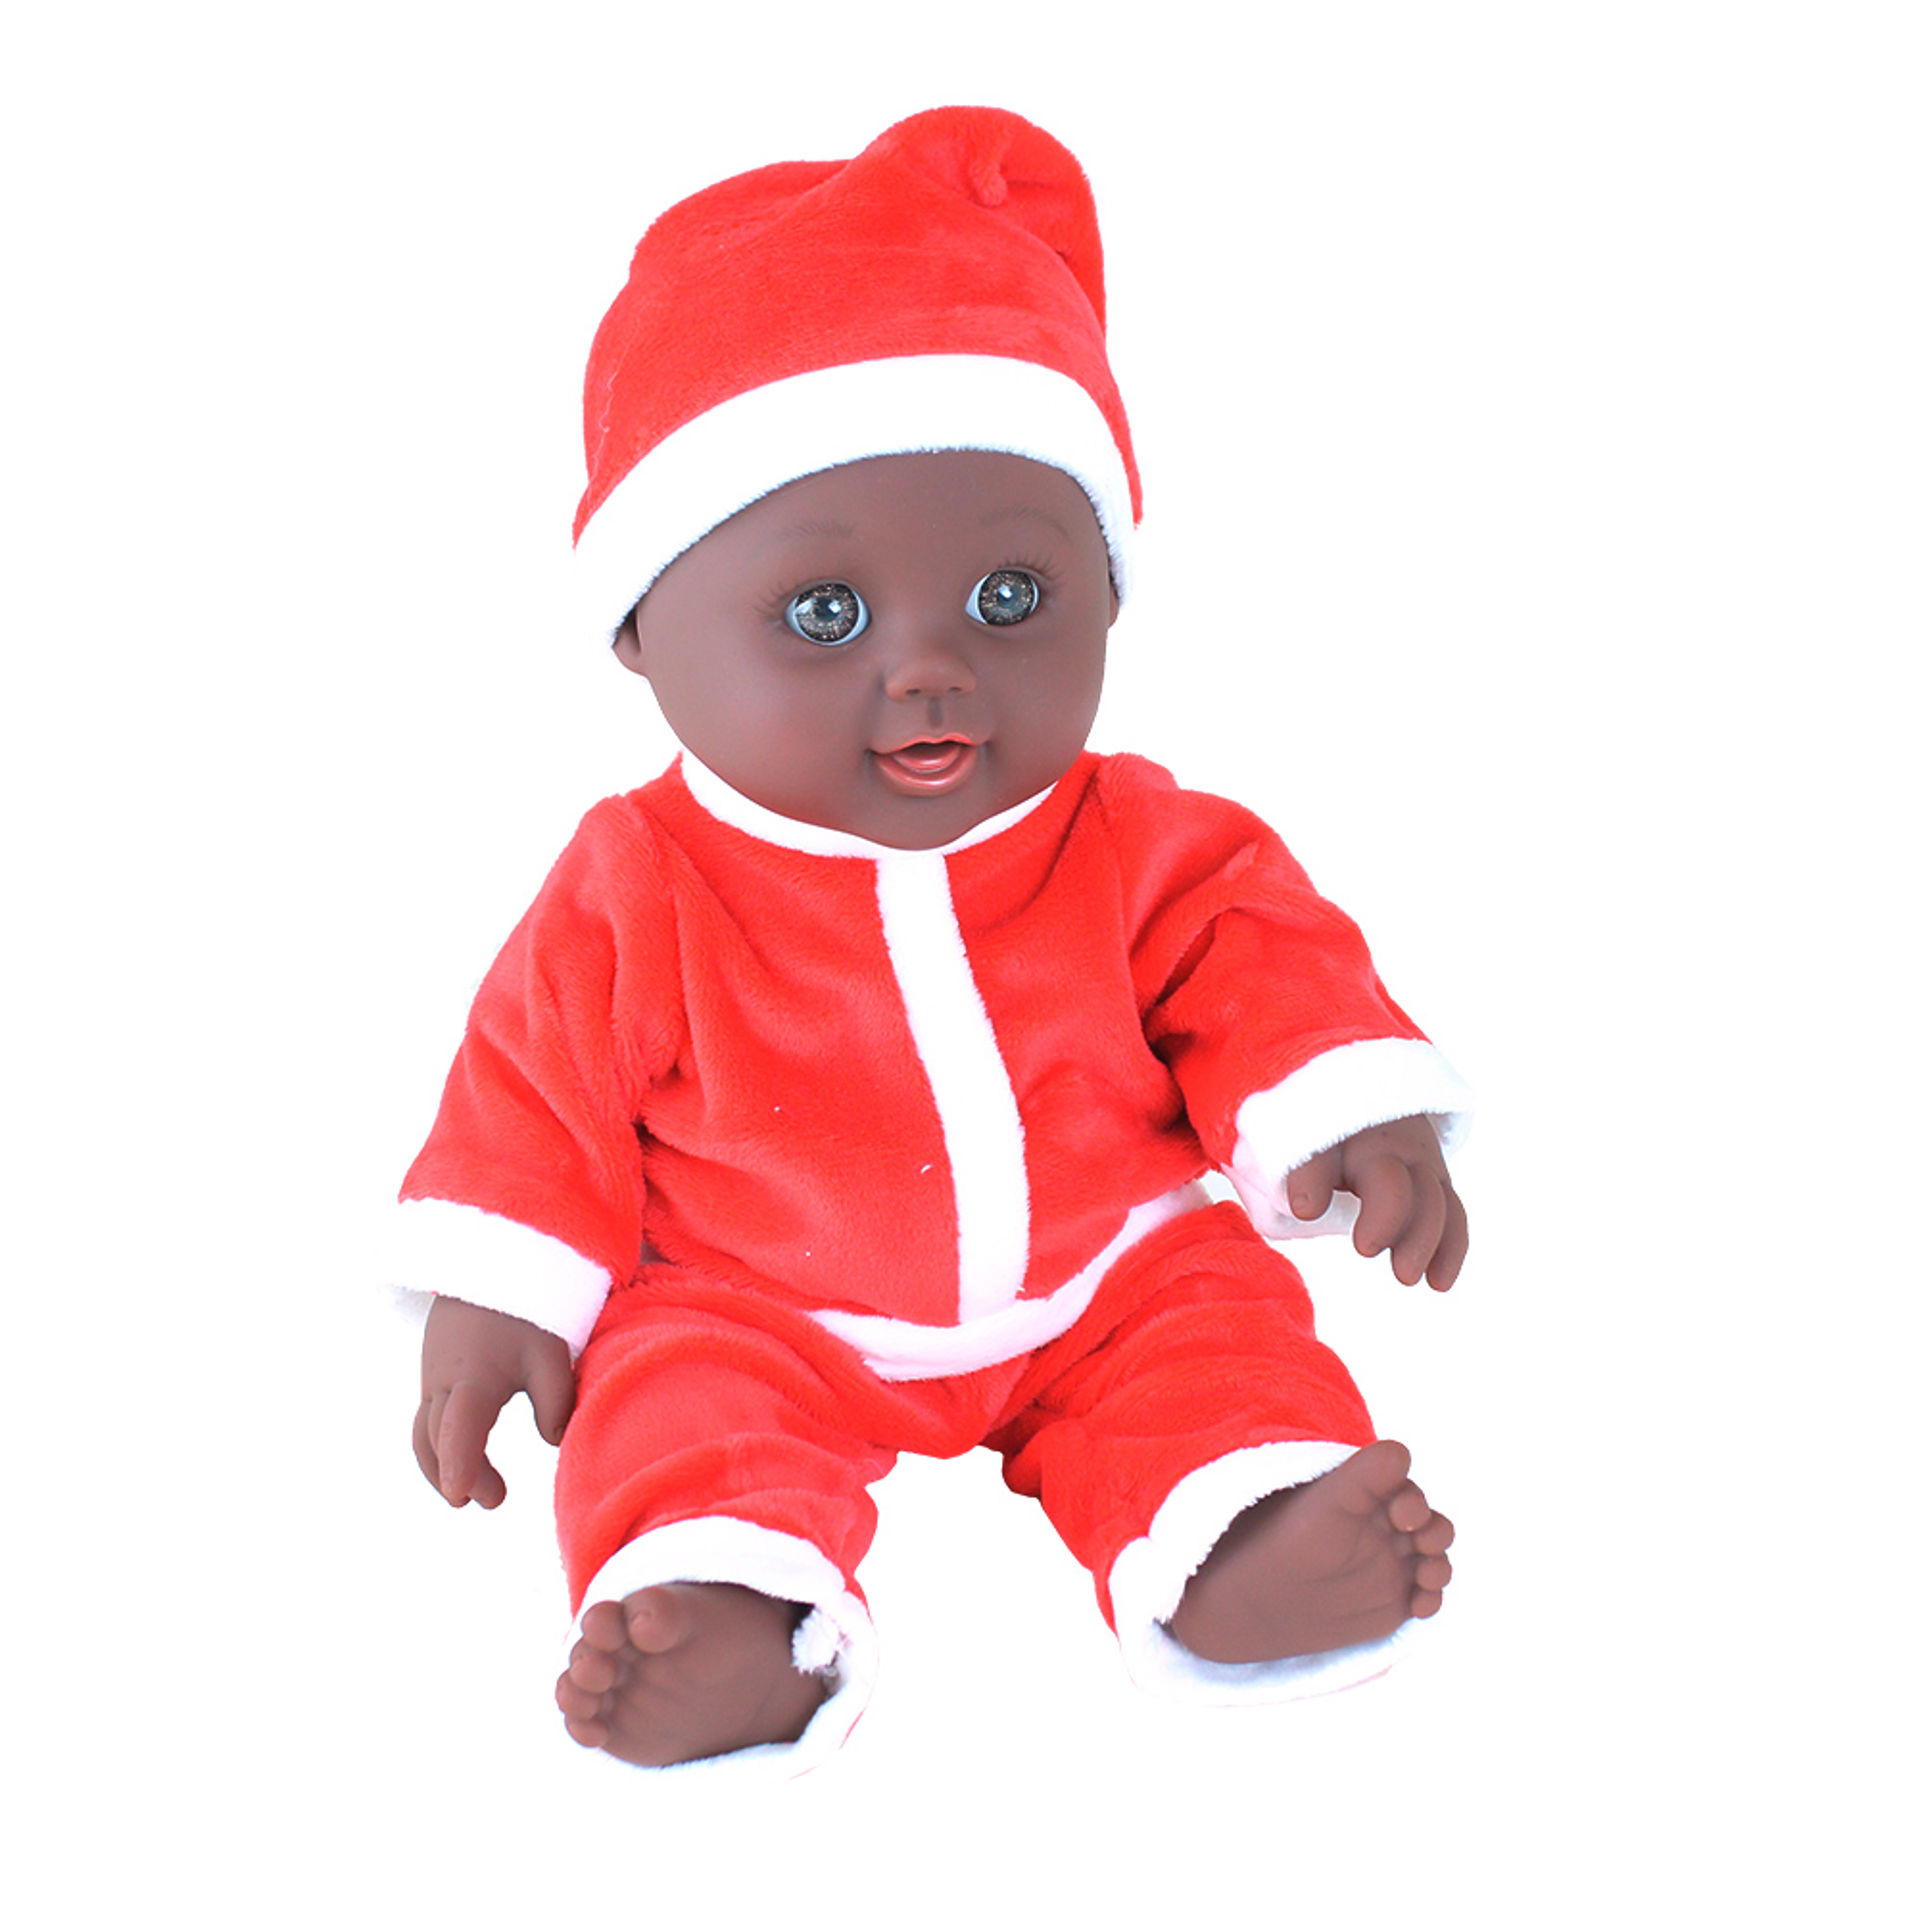 Picture of Santa Suit Baby Doll - Boy